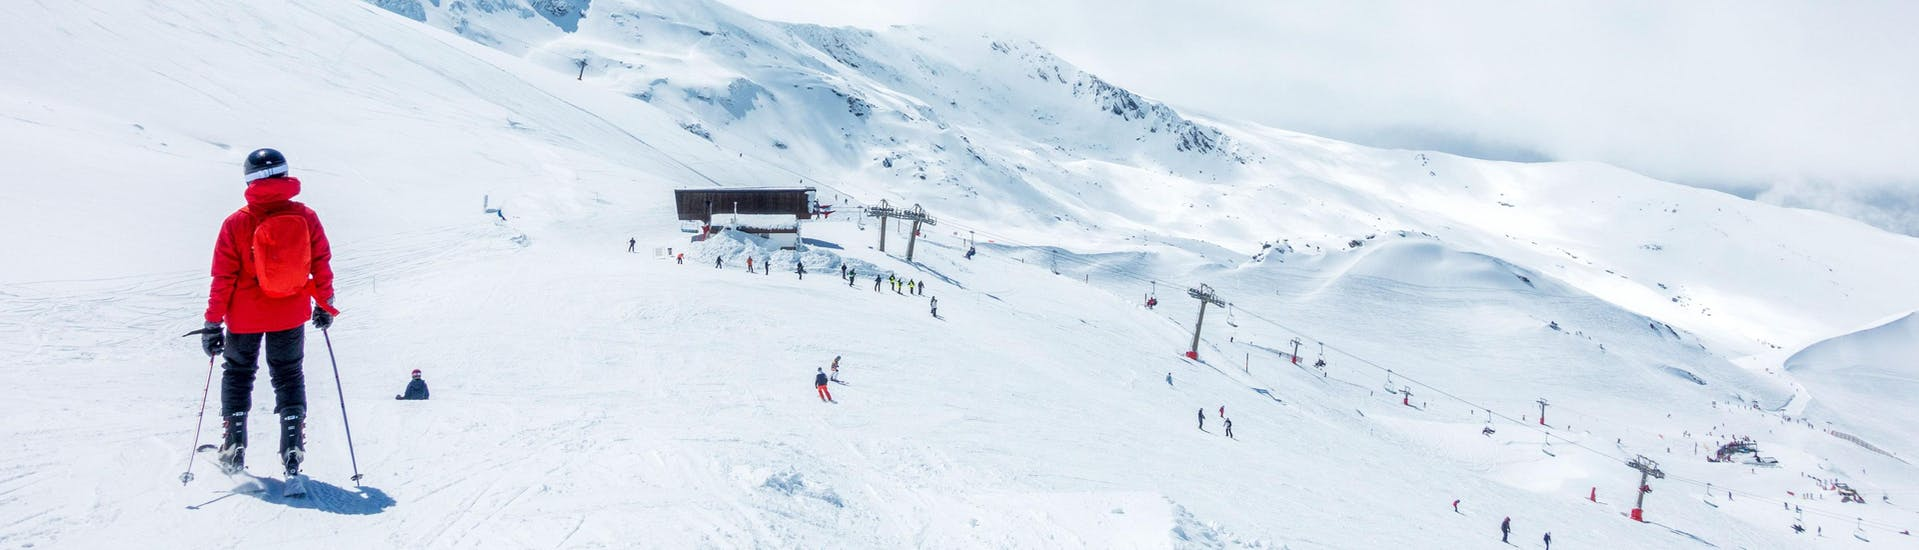 Skiers from different ski schools on the slopes on a sunny day in the ski resort Sierra Nevada, Andalusia.